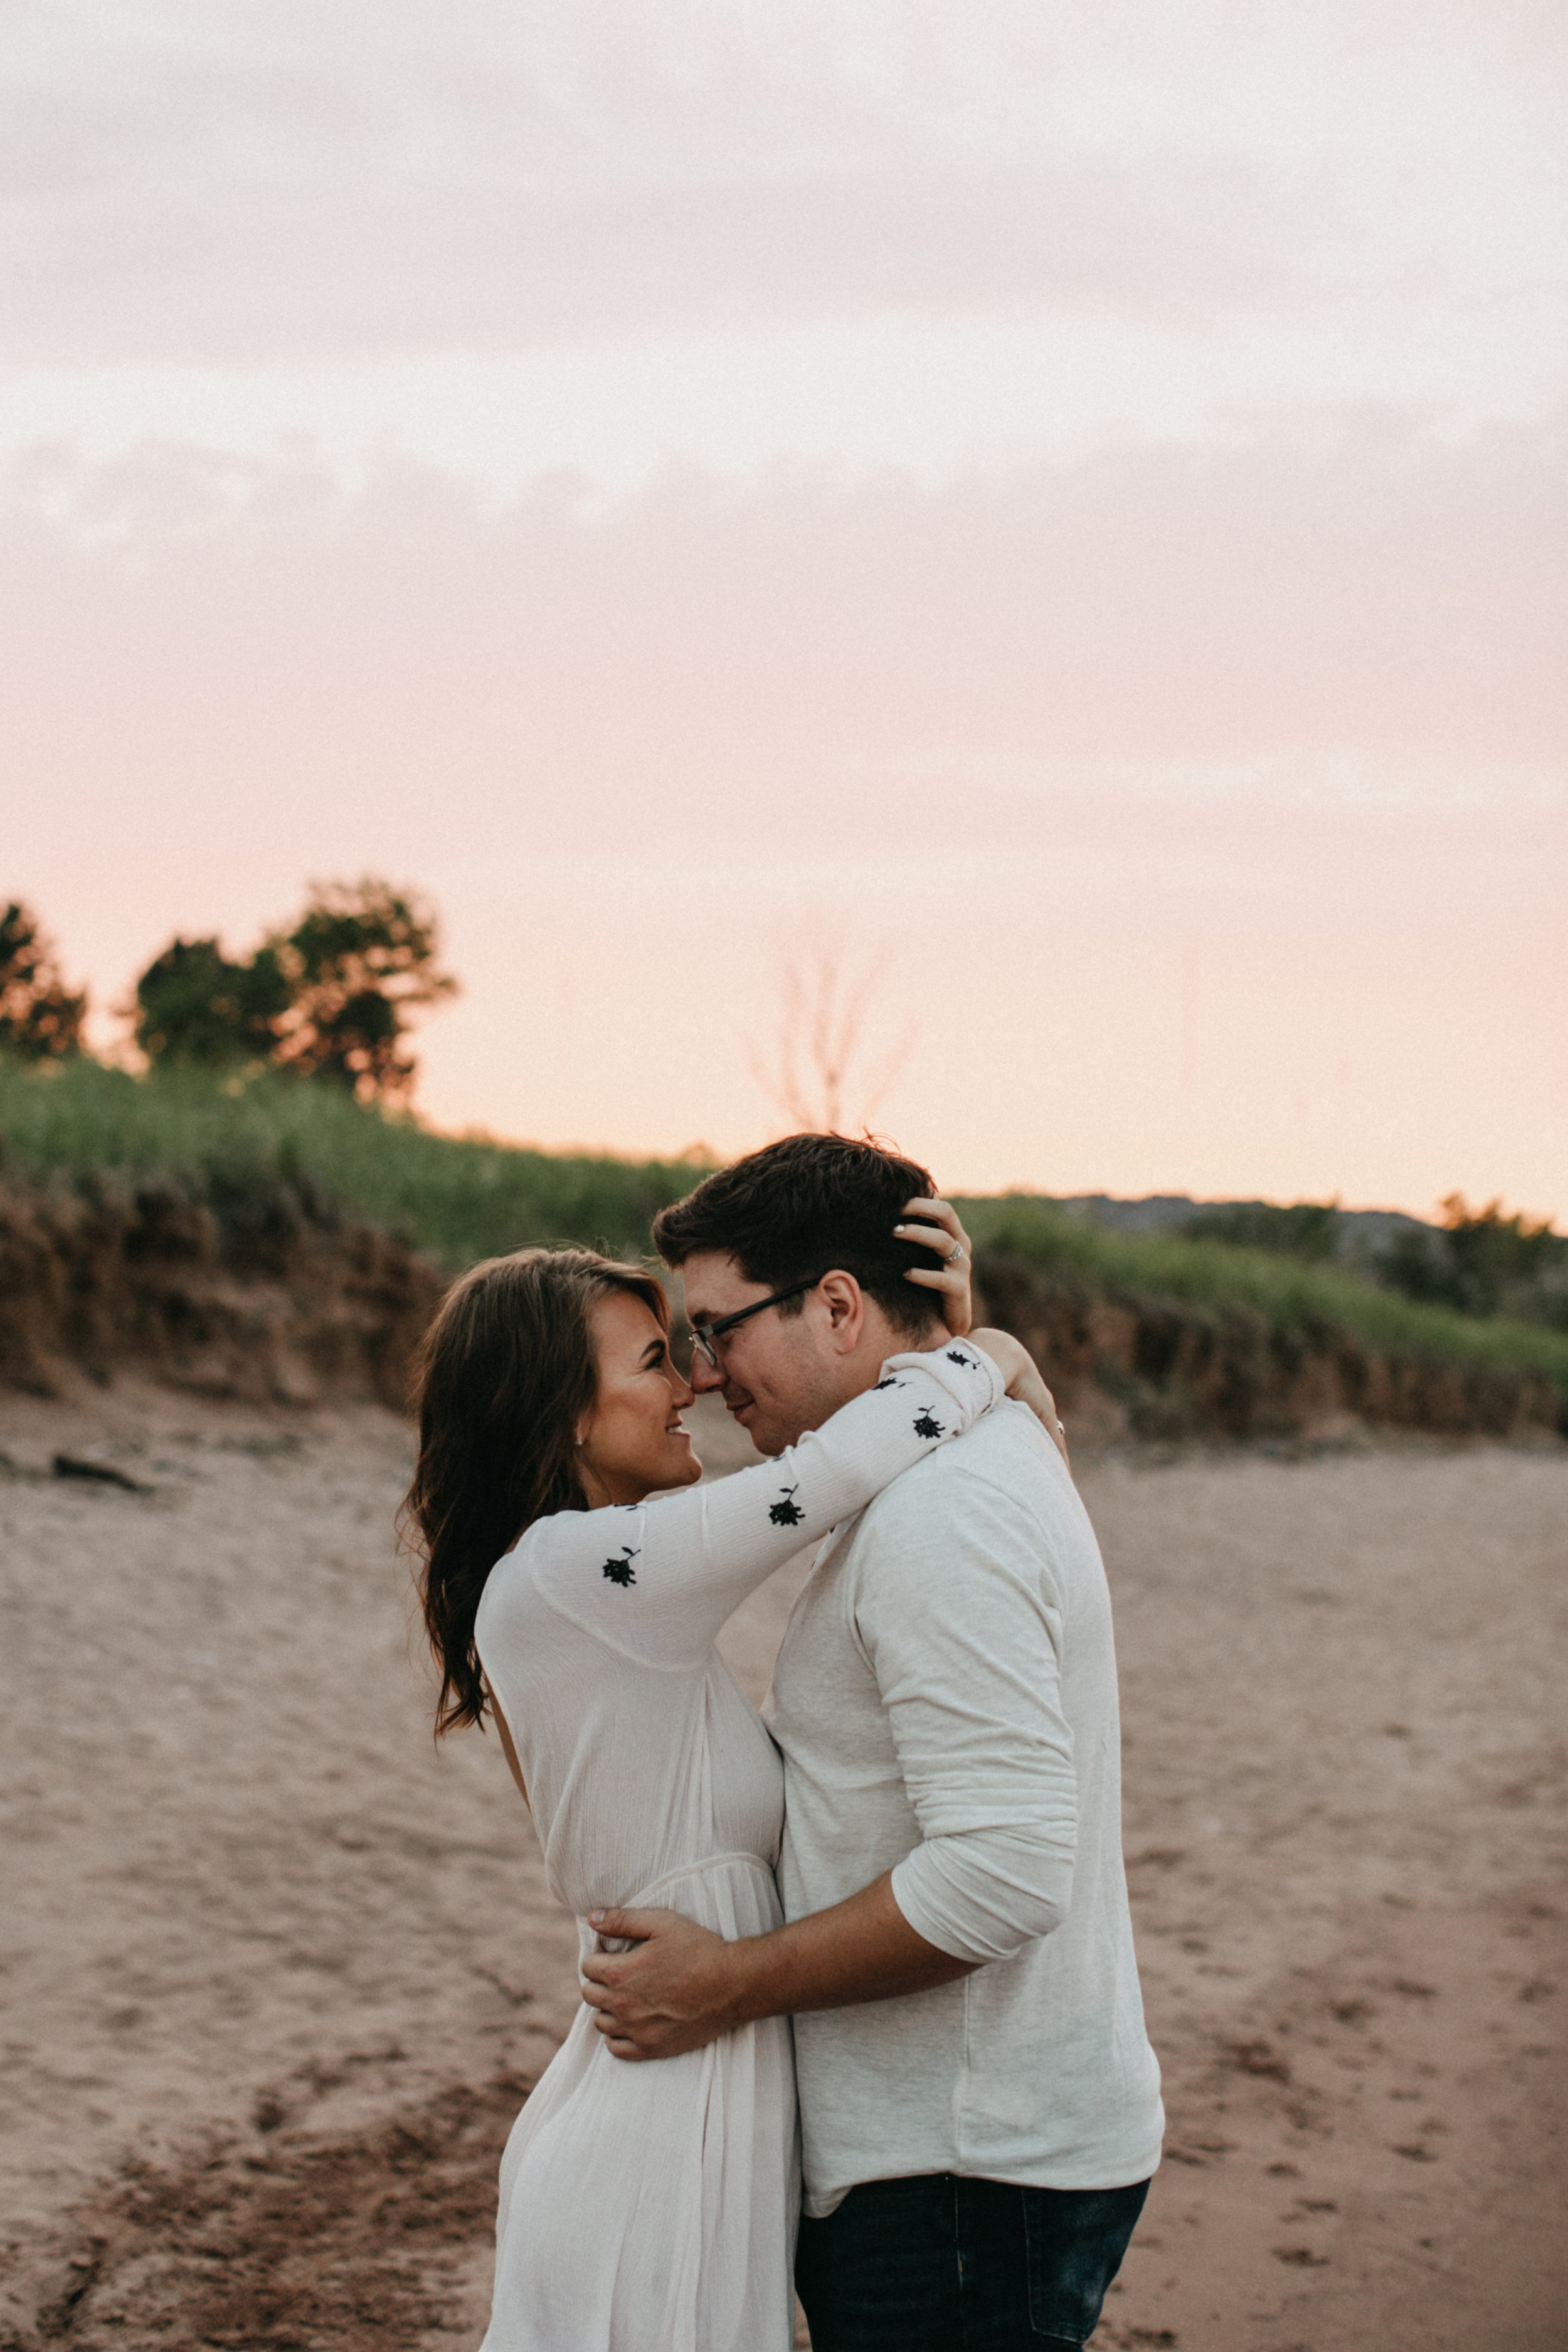 Beautiful sunset engagement session at Park Point Beach in Duluth Minnesota